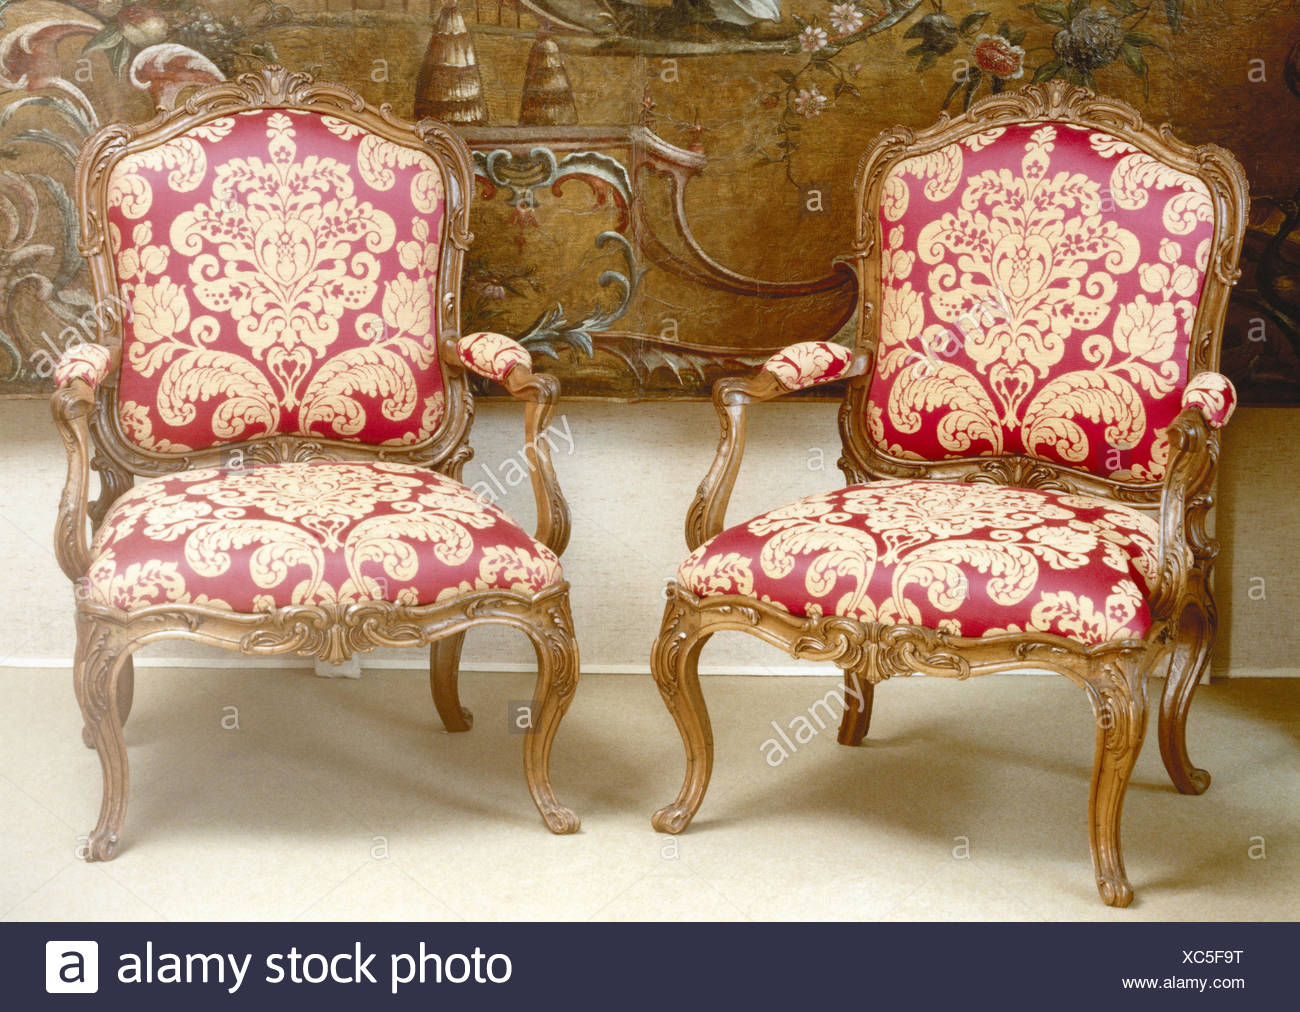 antiques st furniture chairs 18 cent ludwig xv antiquitt old antique armchair furniture seat piece furniture two decorates red interior product photography still life image